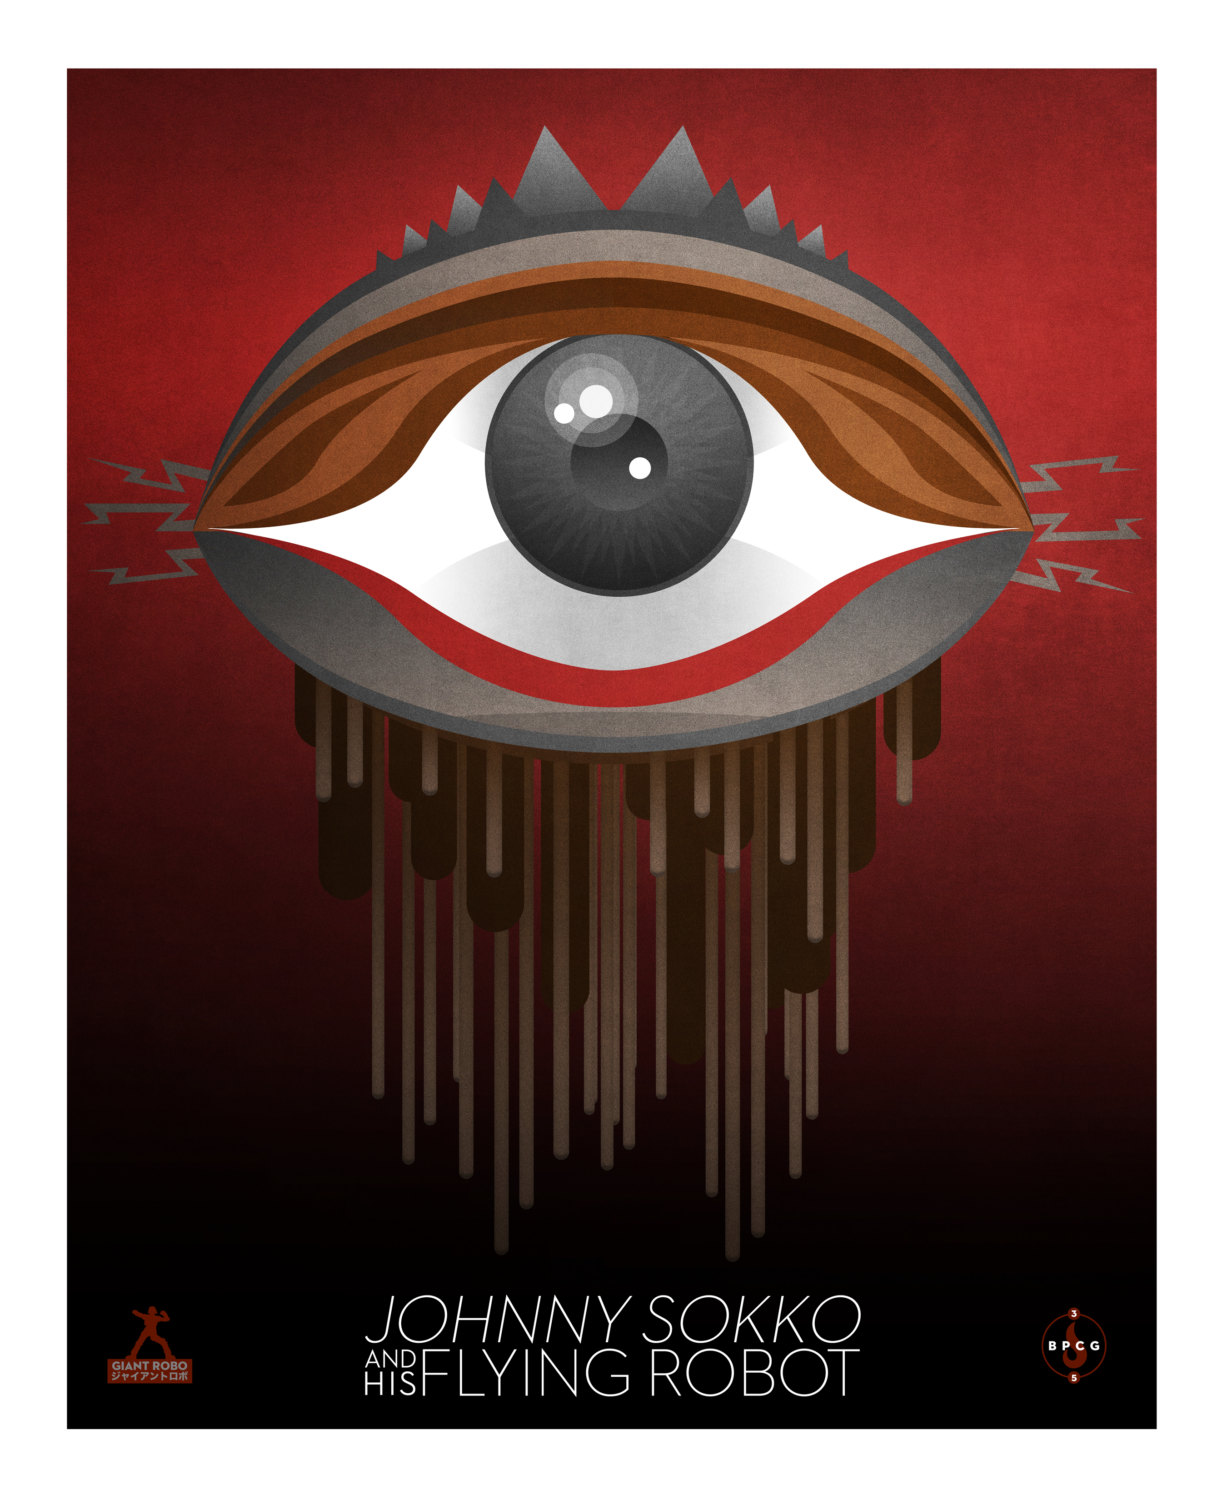 johnny-soklo-and-his-flying-robot-3